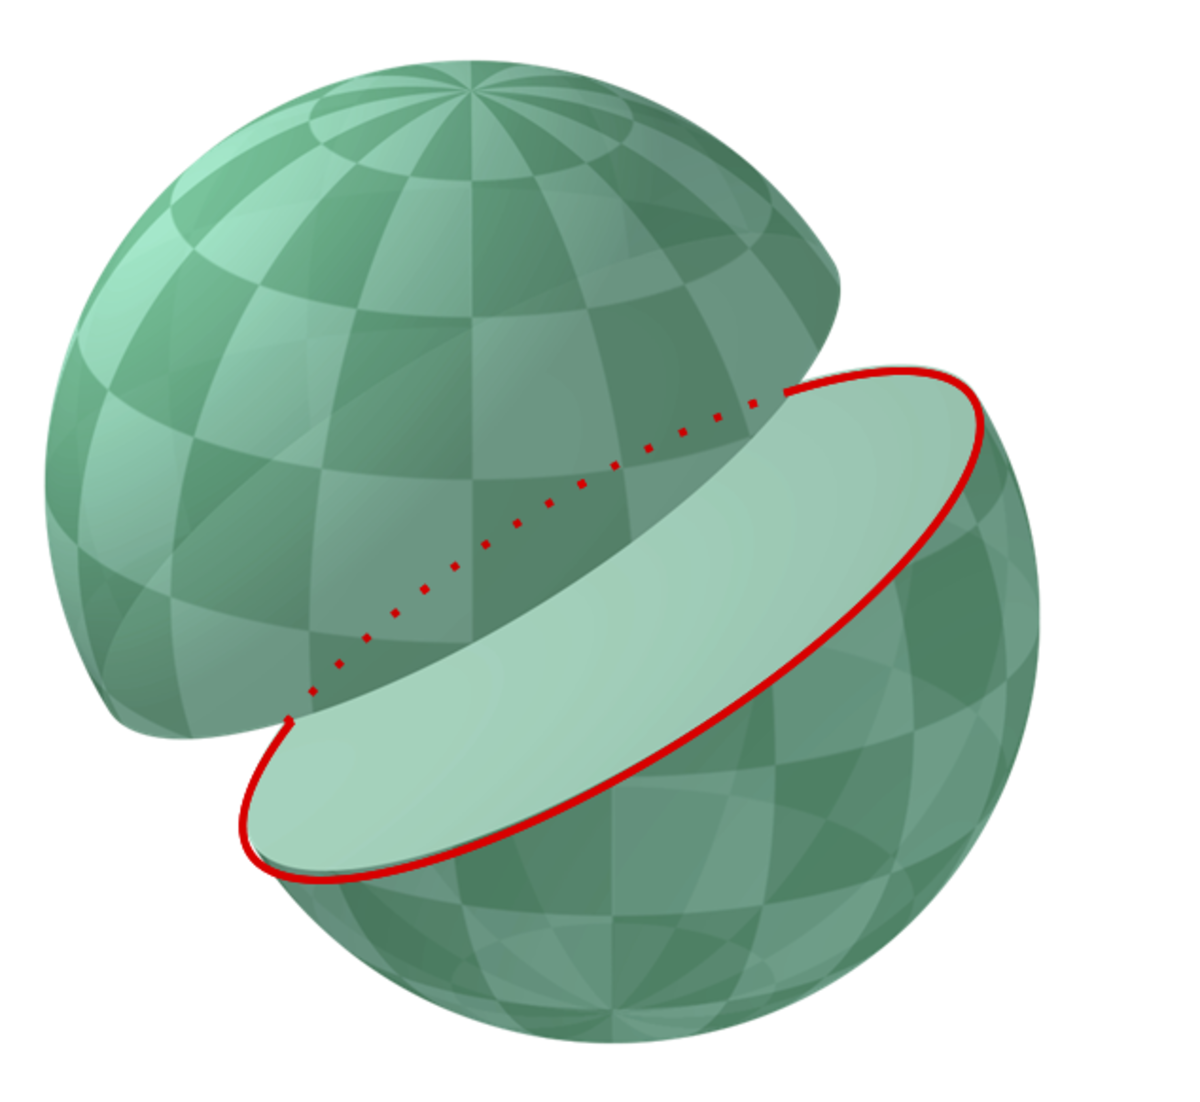 Any great circle divides a sphere into two hemispheres.